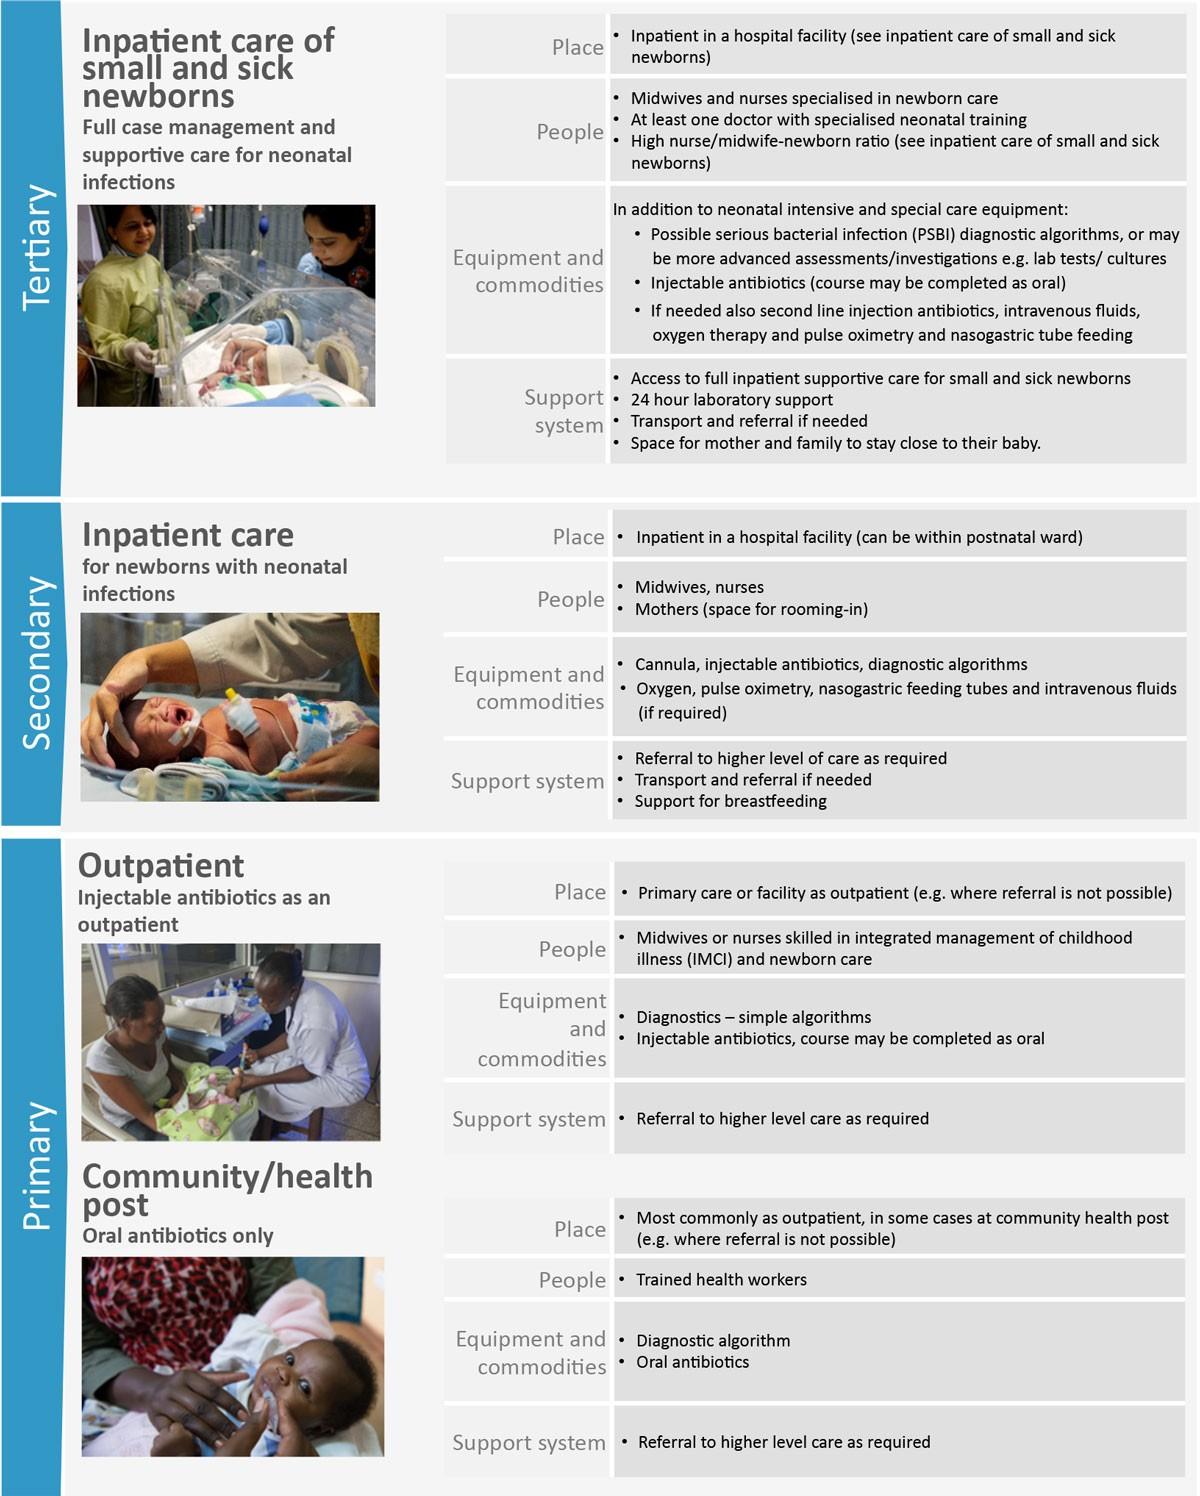 Treatment of neonatal infections: a multi-country analysis of health ...